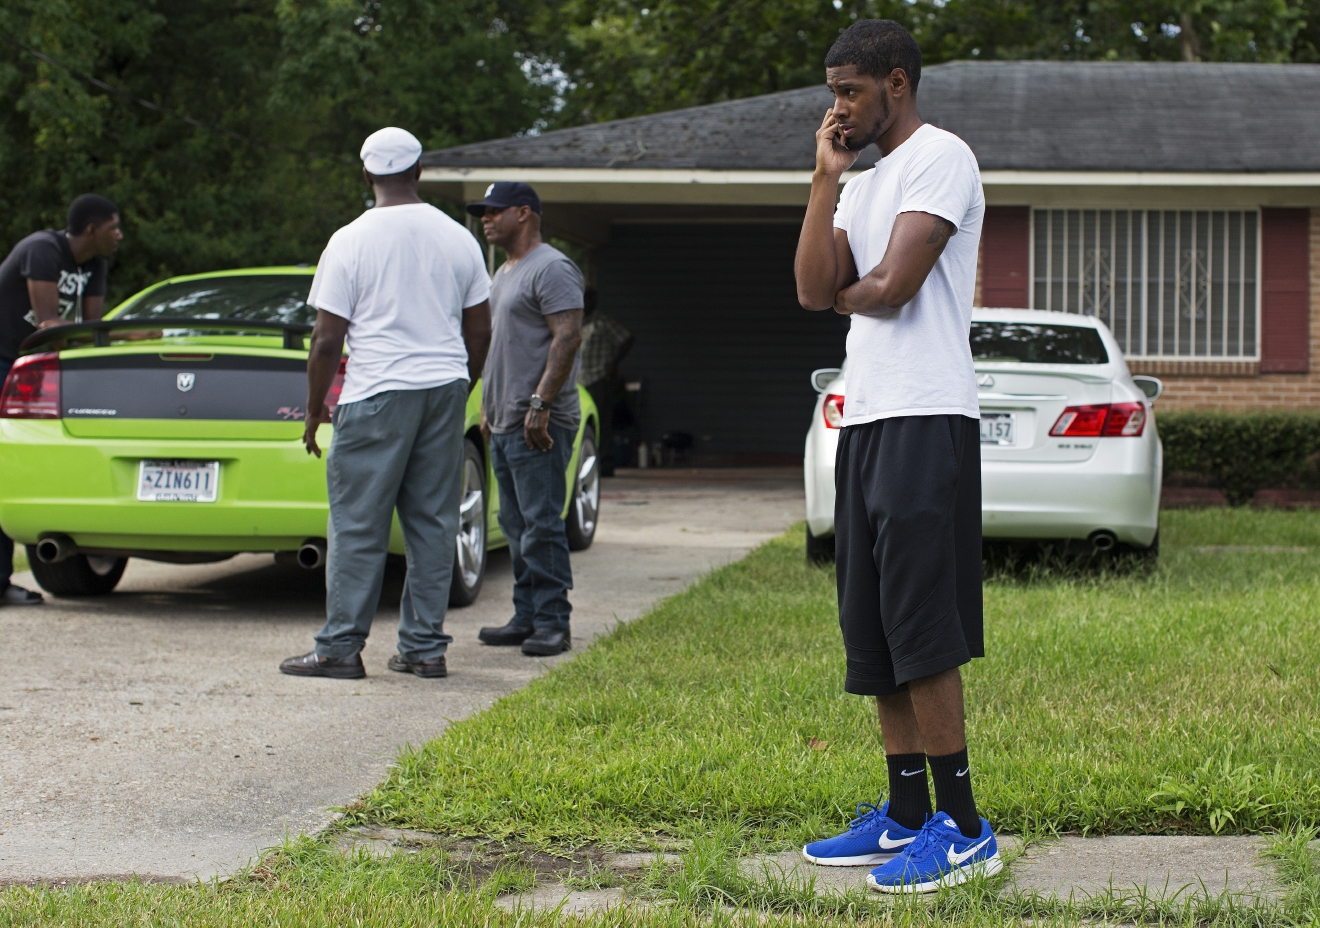 Kedrick Pitts, the half-brother of slain Baton Rouge Policeman, Cpl. Montrell Jackson, talks on the phone in front of Montrell's mother's house in Baton Rouge, La., Sunday, July 17, 2016. Jackson was one of the law enforcement officers who were shot and killed on Sunday morning. (AP Photo/Max Becherer)